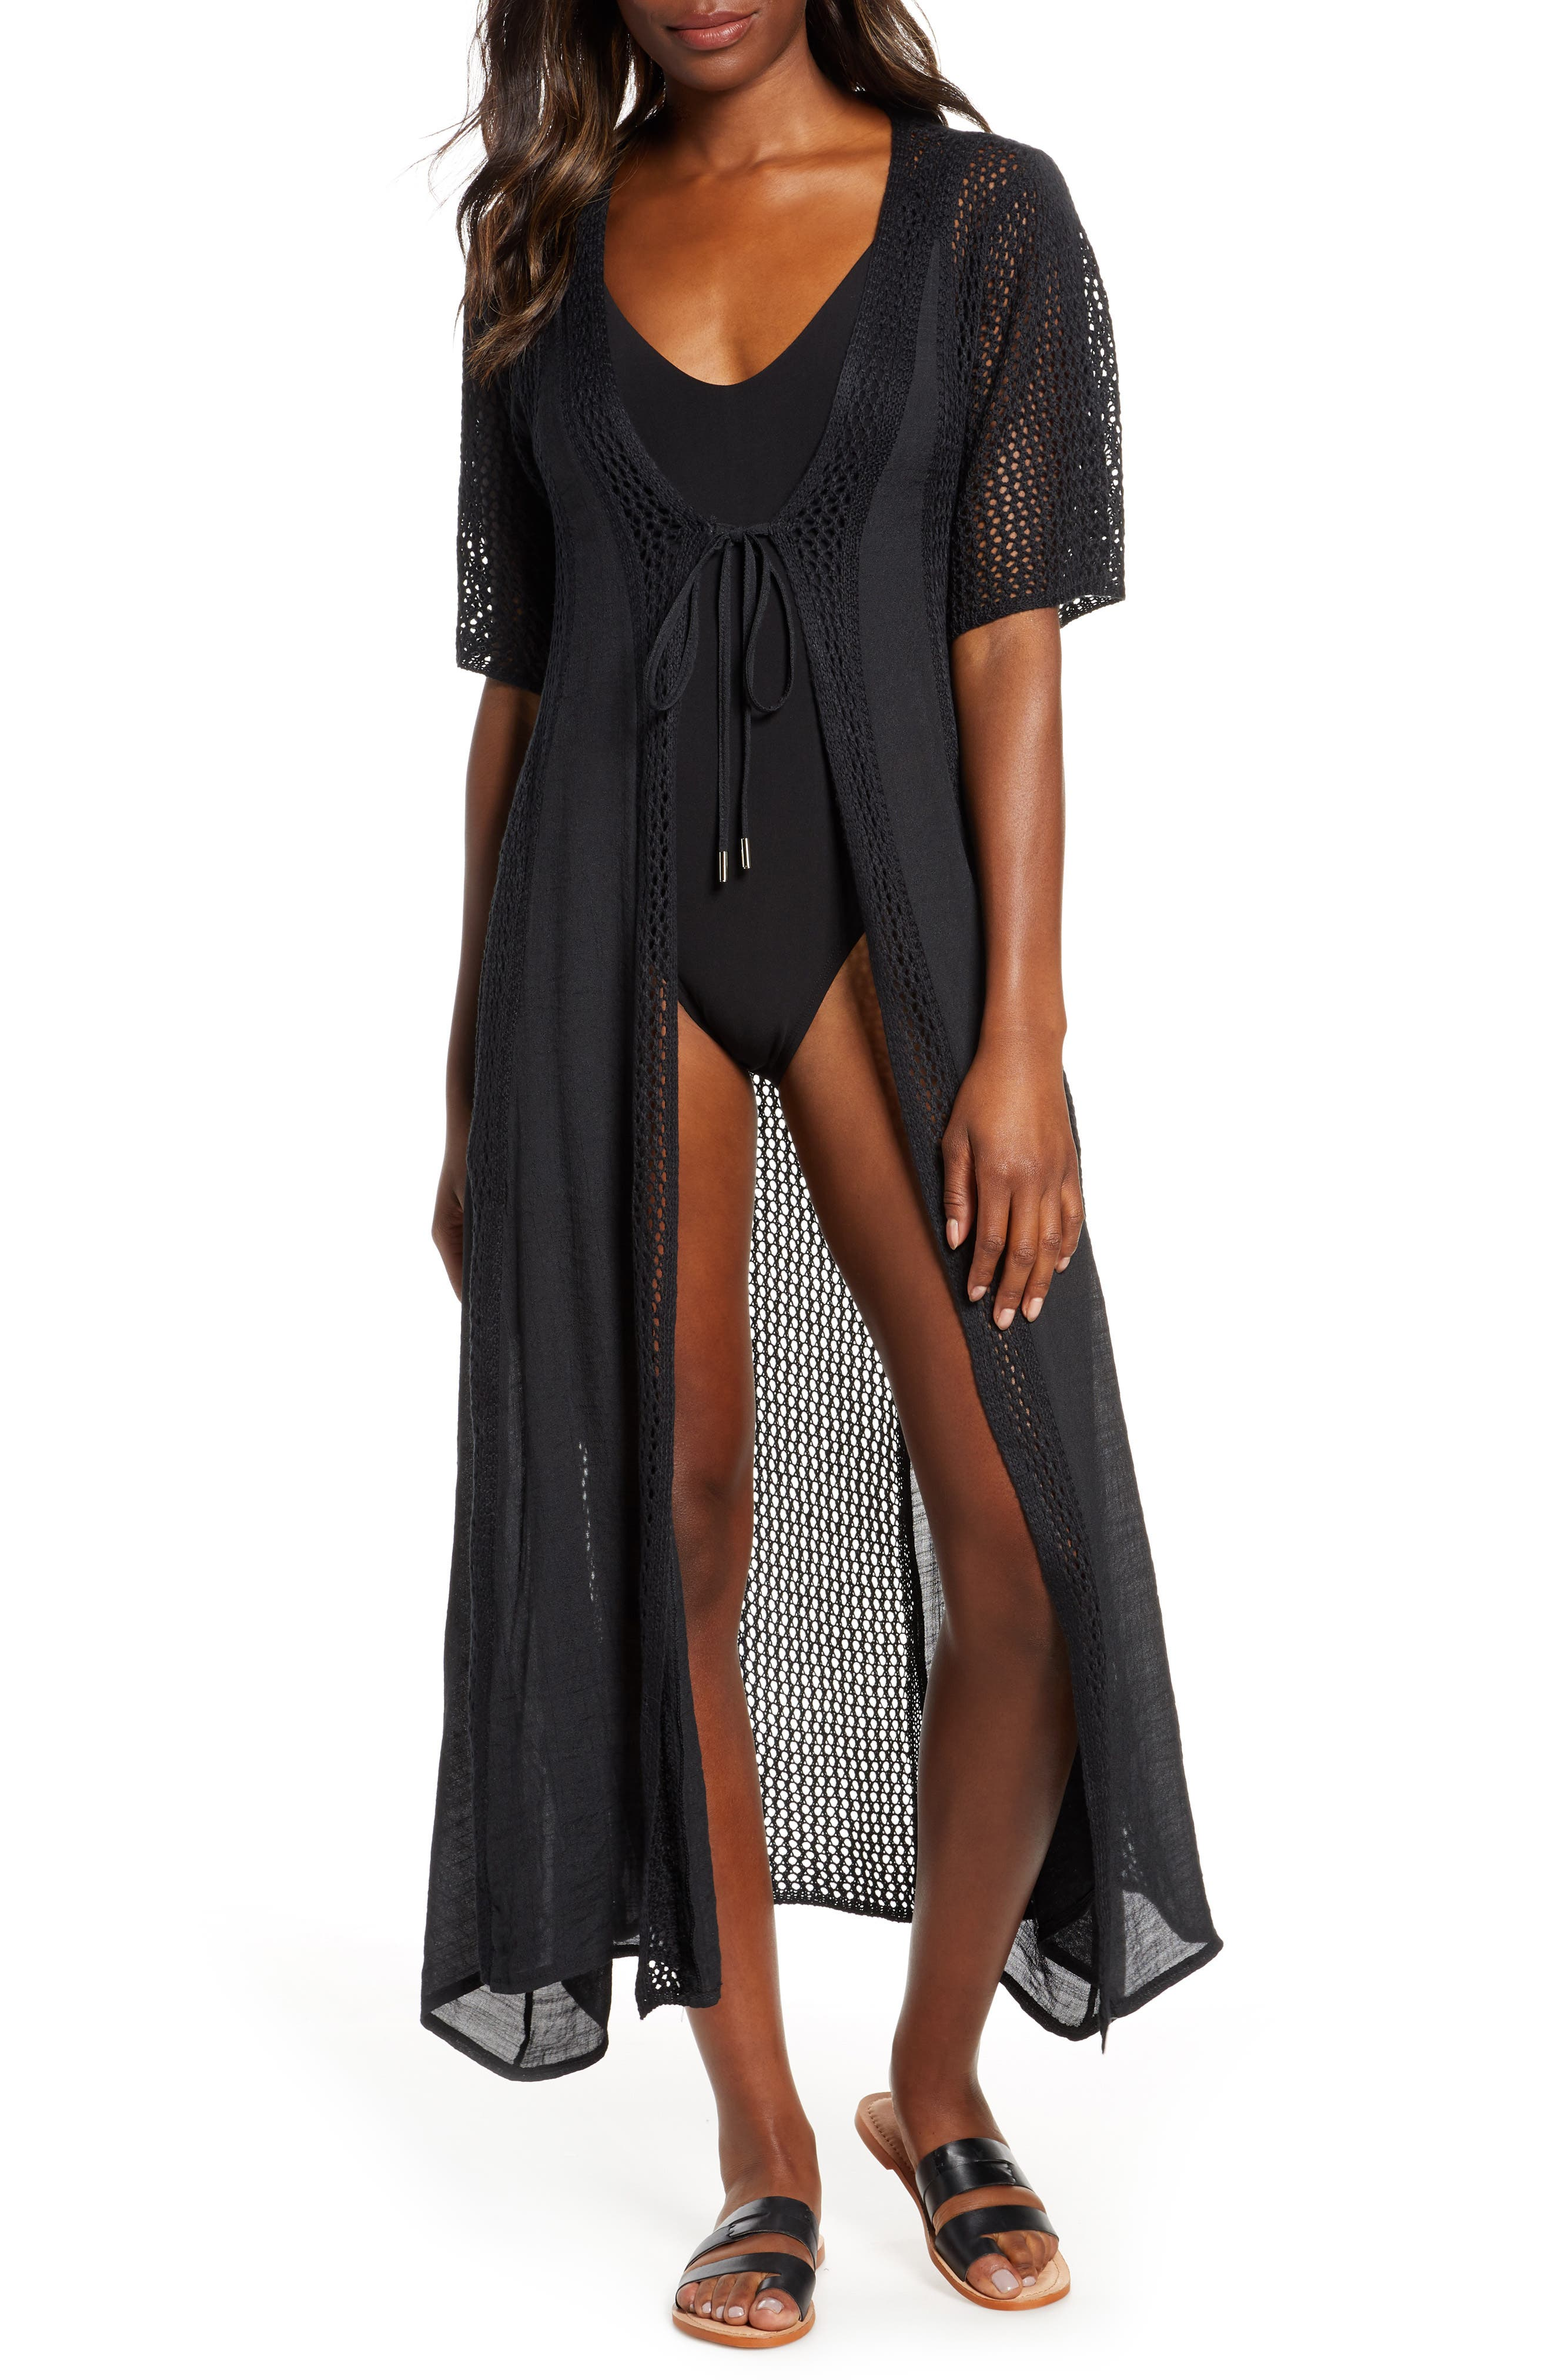 Panels of open crochet work add to the airy look and feel of a woven cover-up in a long cut with a tie front. Style Name: Elan Crochet Panel Swim Cover-Up. Style Number: 5848289. Available in stores.